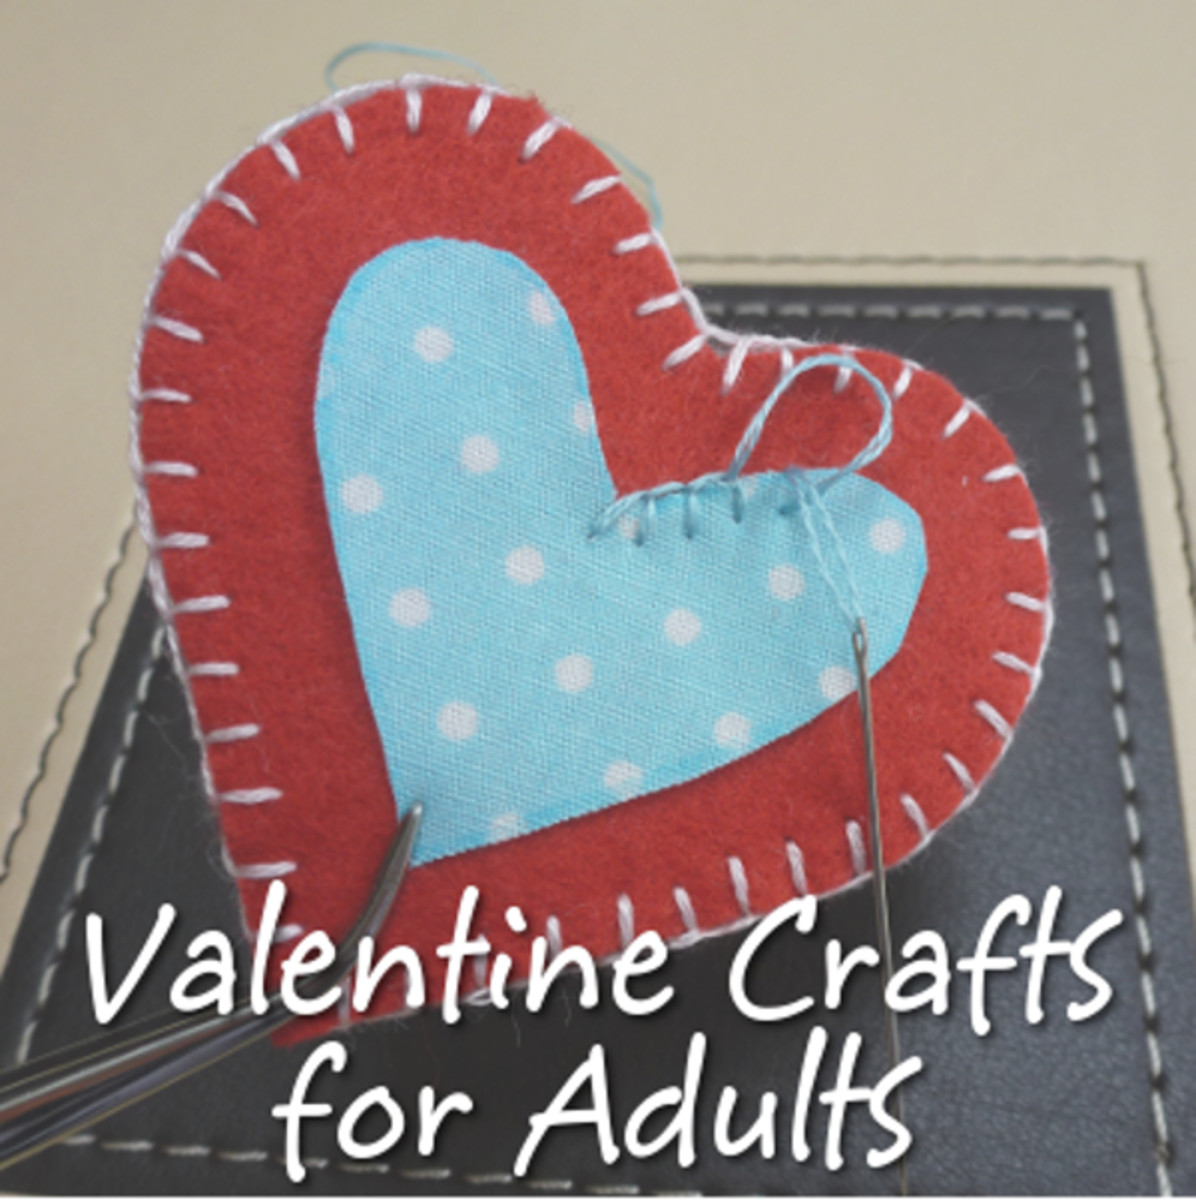 Lots of fun Valentine themed crafts for adults to enjoy